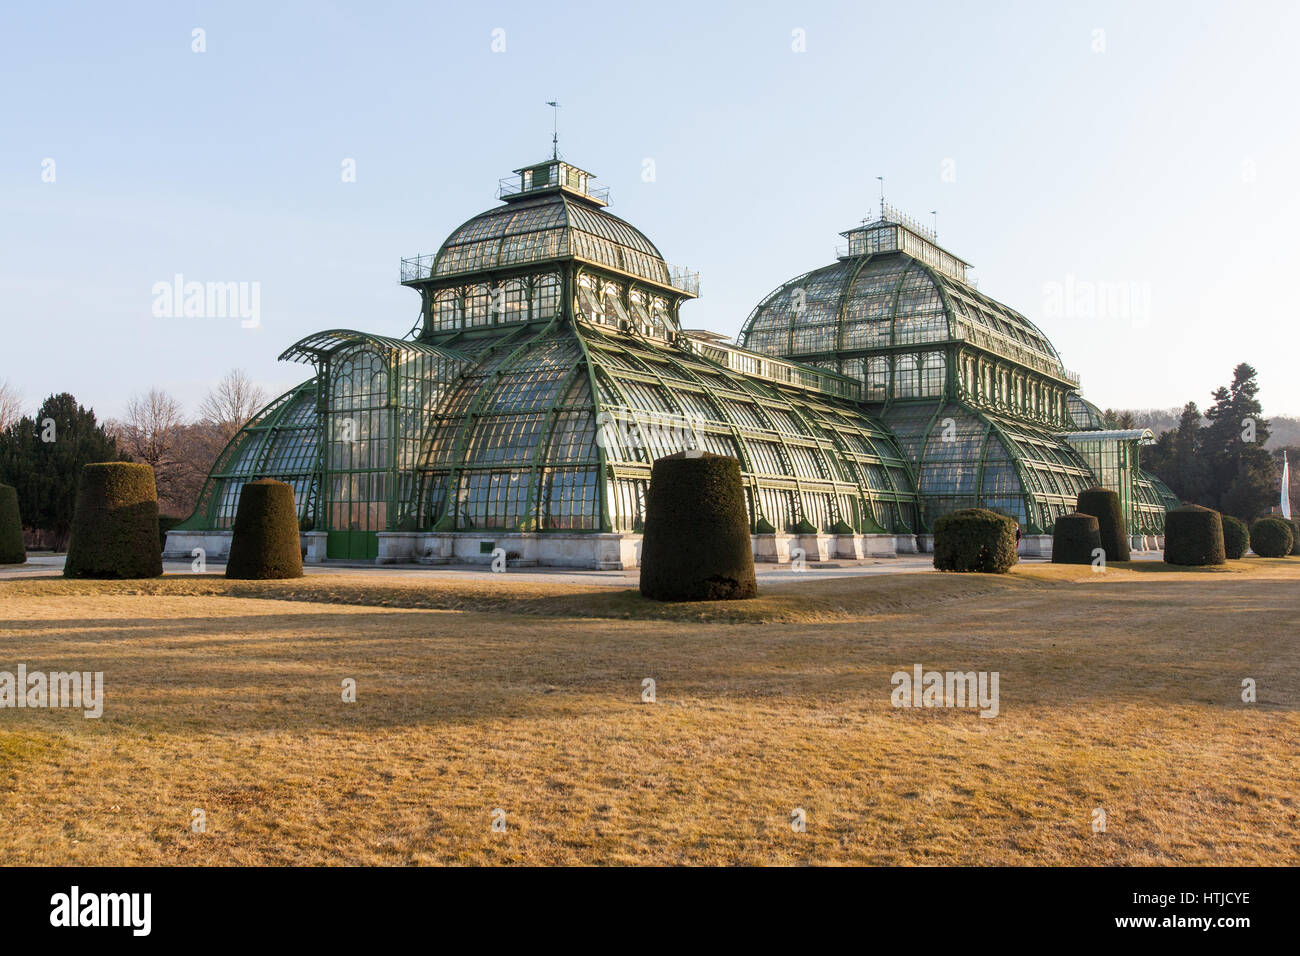 Palm House or Palmenhaus in the Schönbrunn palace gardens, Vienna, Austria. - Stock Image